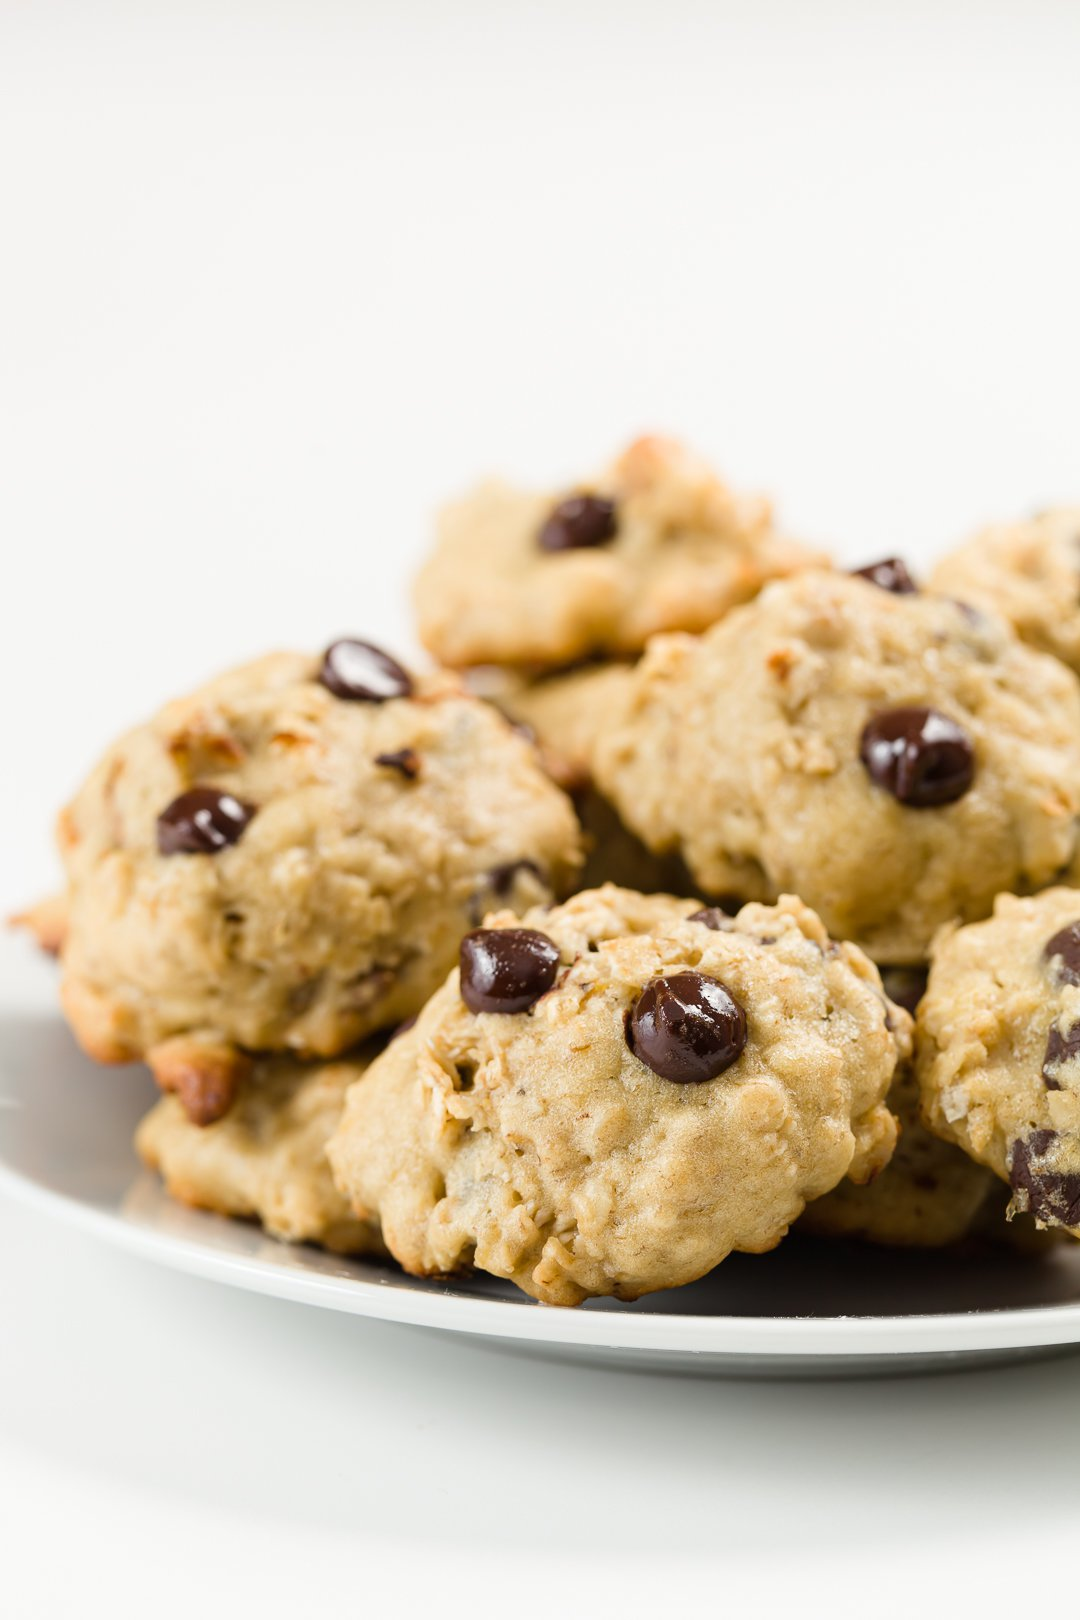 Banana Cookies with Chocolate Chips